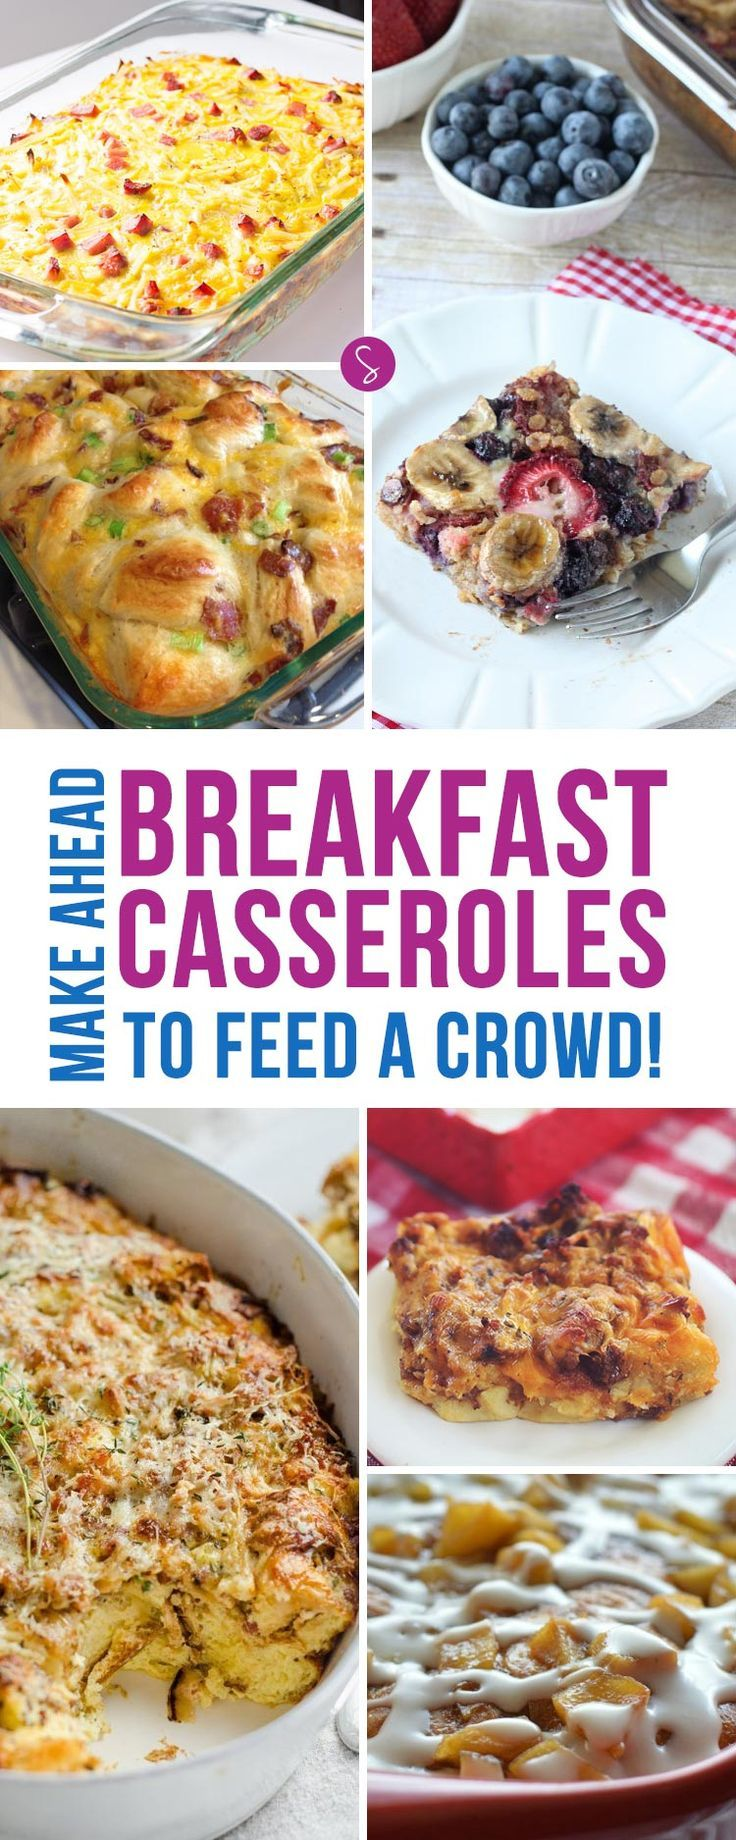 10 amazing make ahead breakfast casseroles you'll wish you'd tried